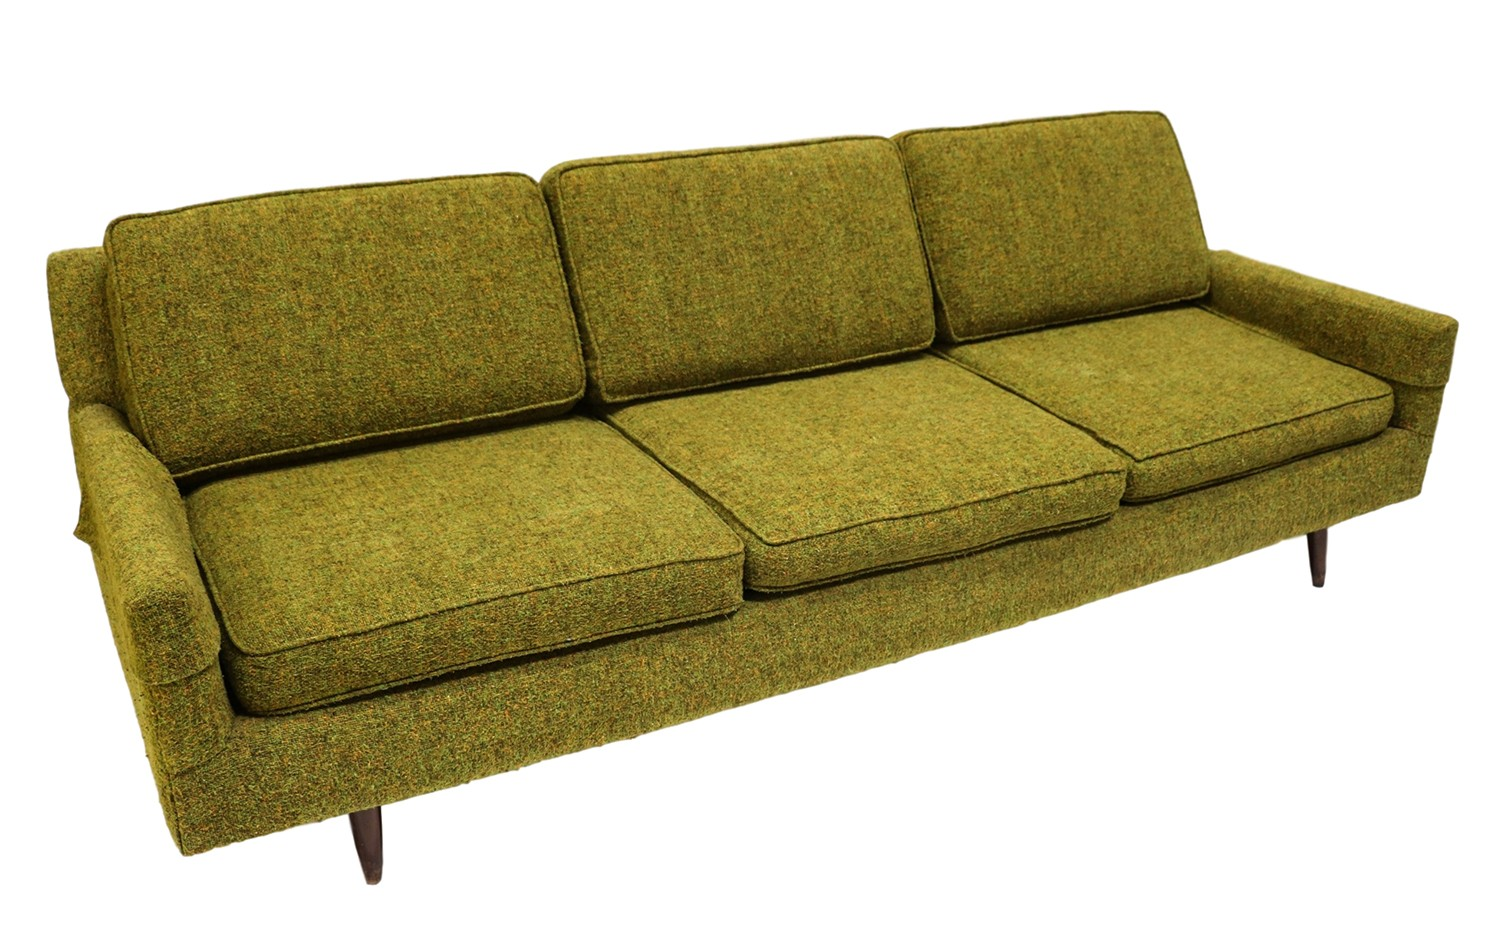 Mid Century Modern Green Upholstered Sofa Watermelon Wallpaper Rainbow Find Free HD for Desktop [freshlhys.tk]